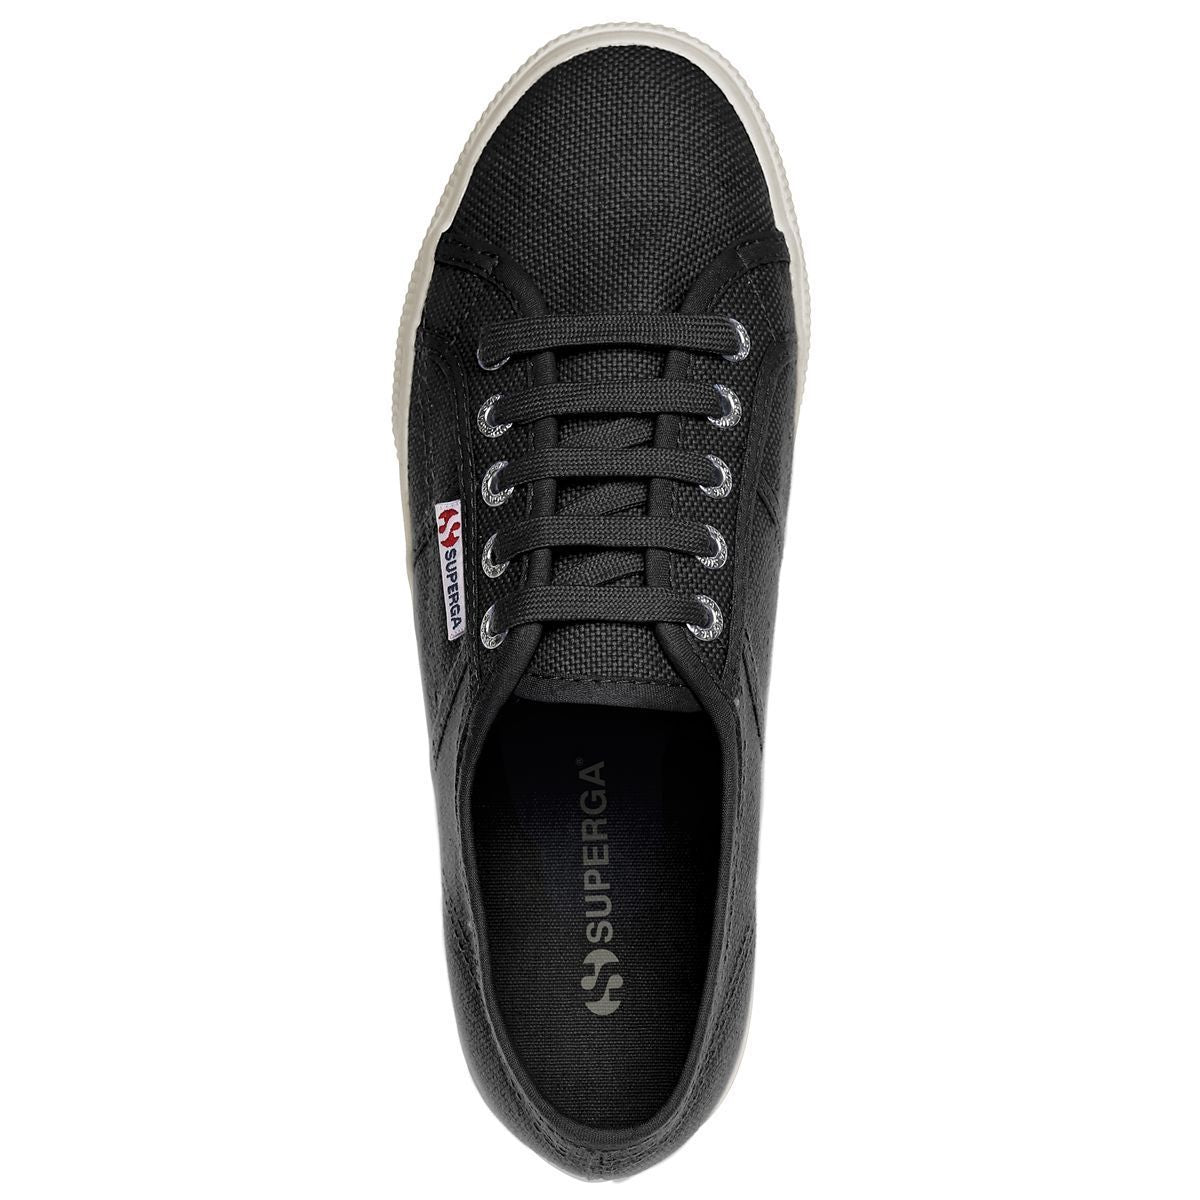 Zapatilla 2790acotw Linea Up And Down Black Negro - EXIT - SmartBrands